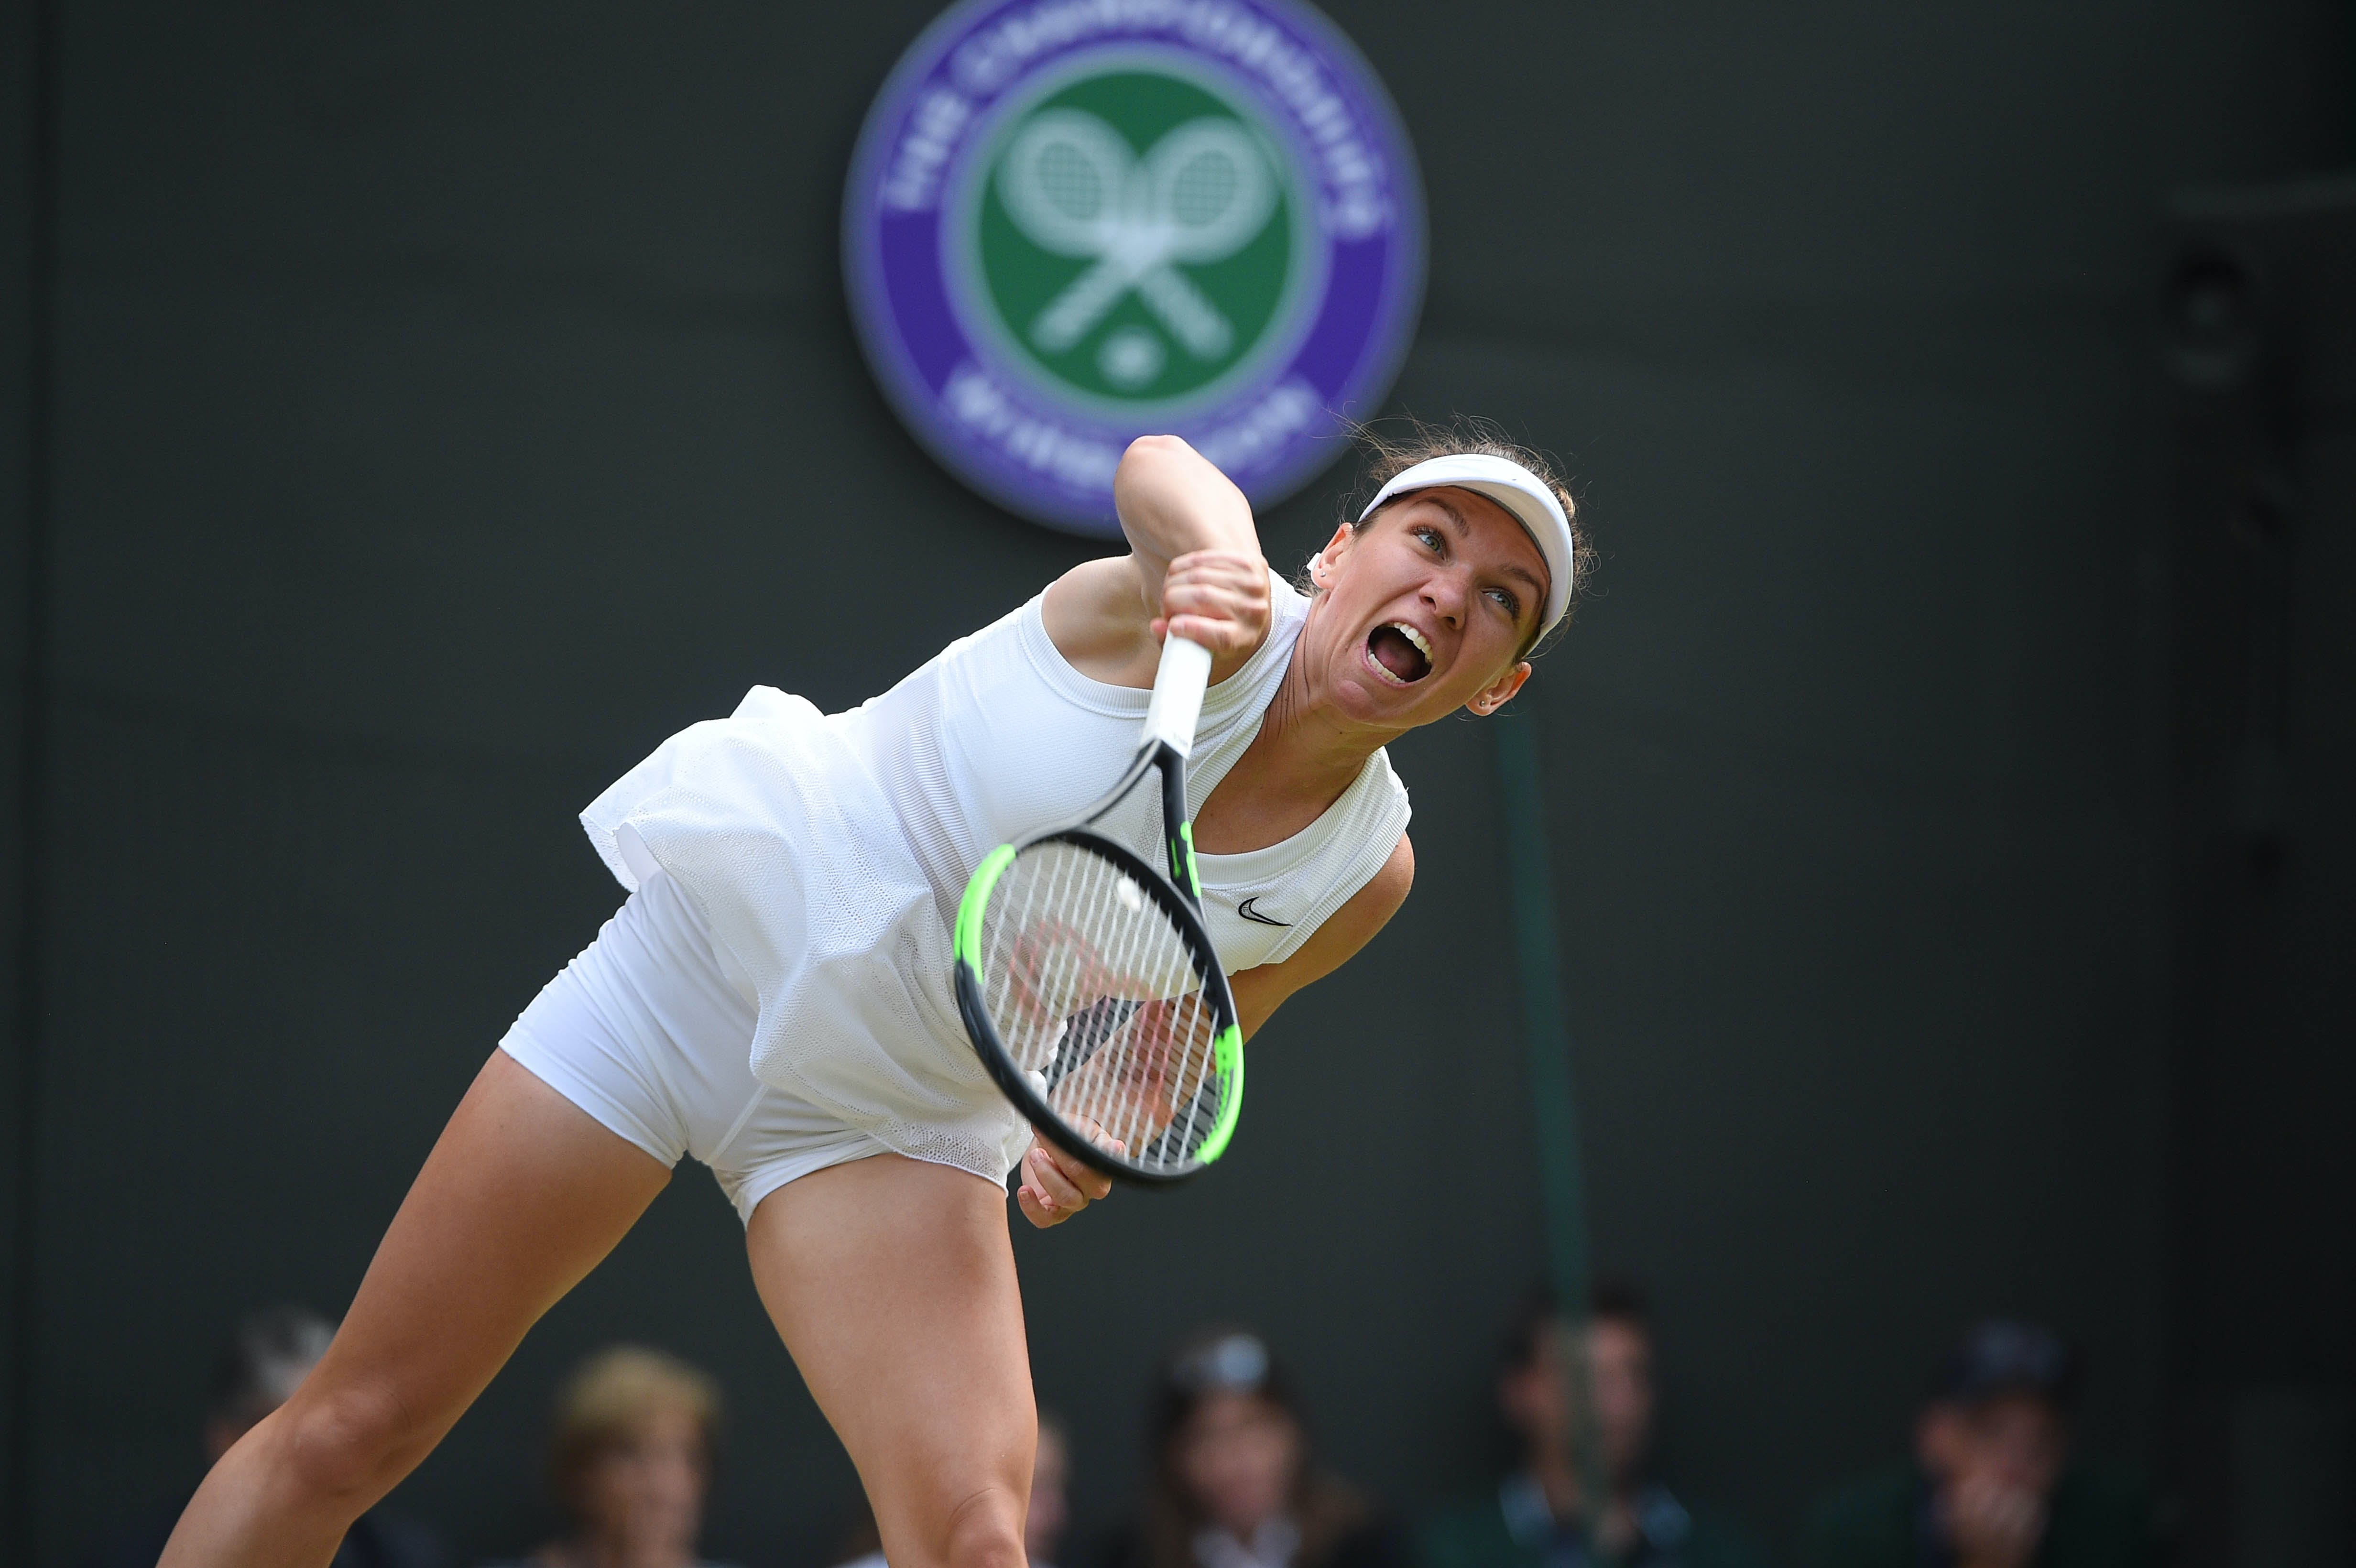 Simona Halep serving at Wimbledon 2019